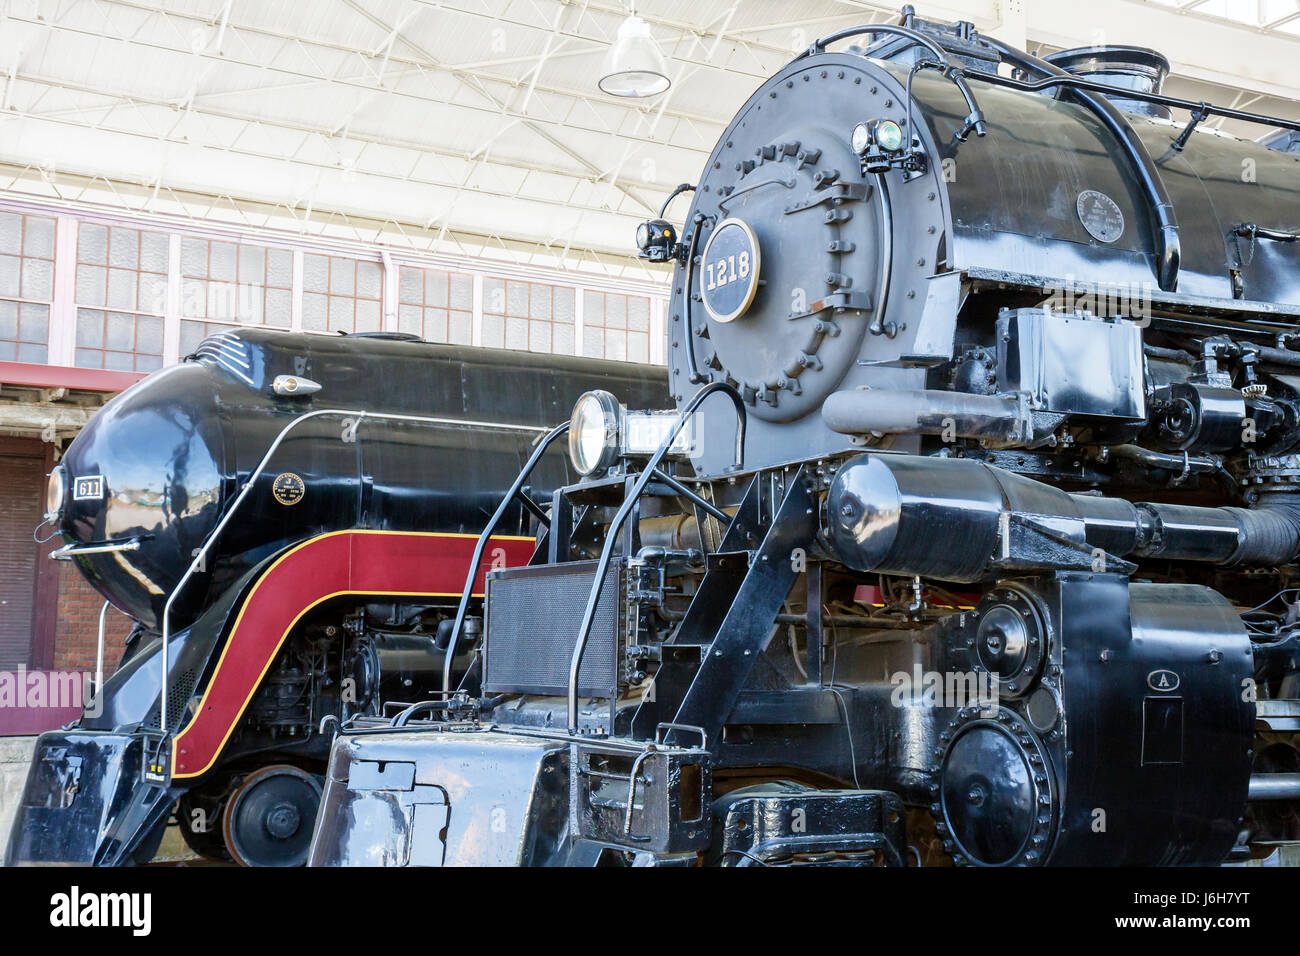 Virginia Roanoke Virginia Museum of Transportation Railyard Norfolk and  Western Class A 1218 steam locomotive Class J 611 train